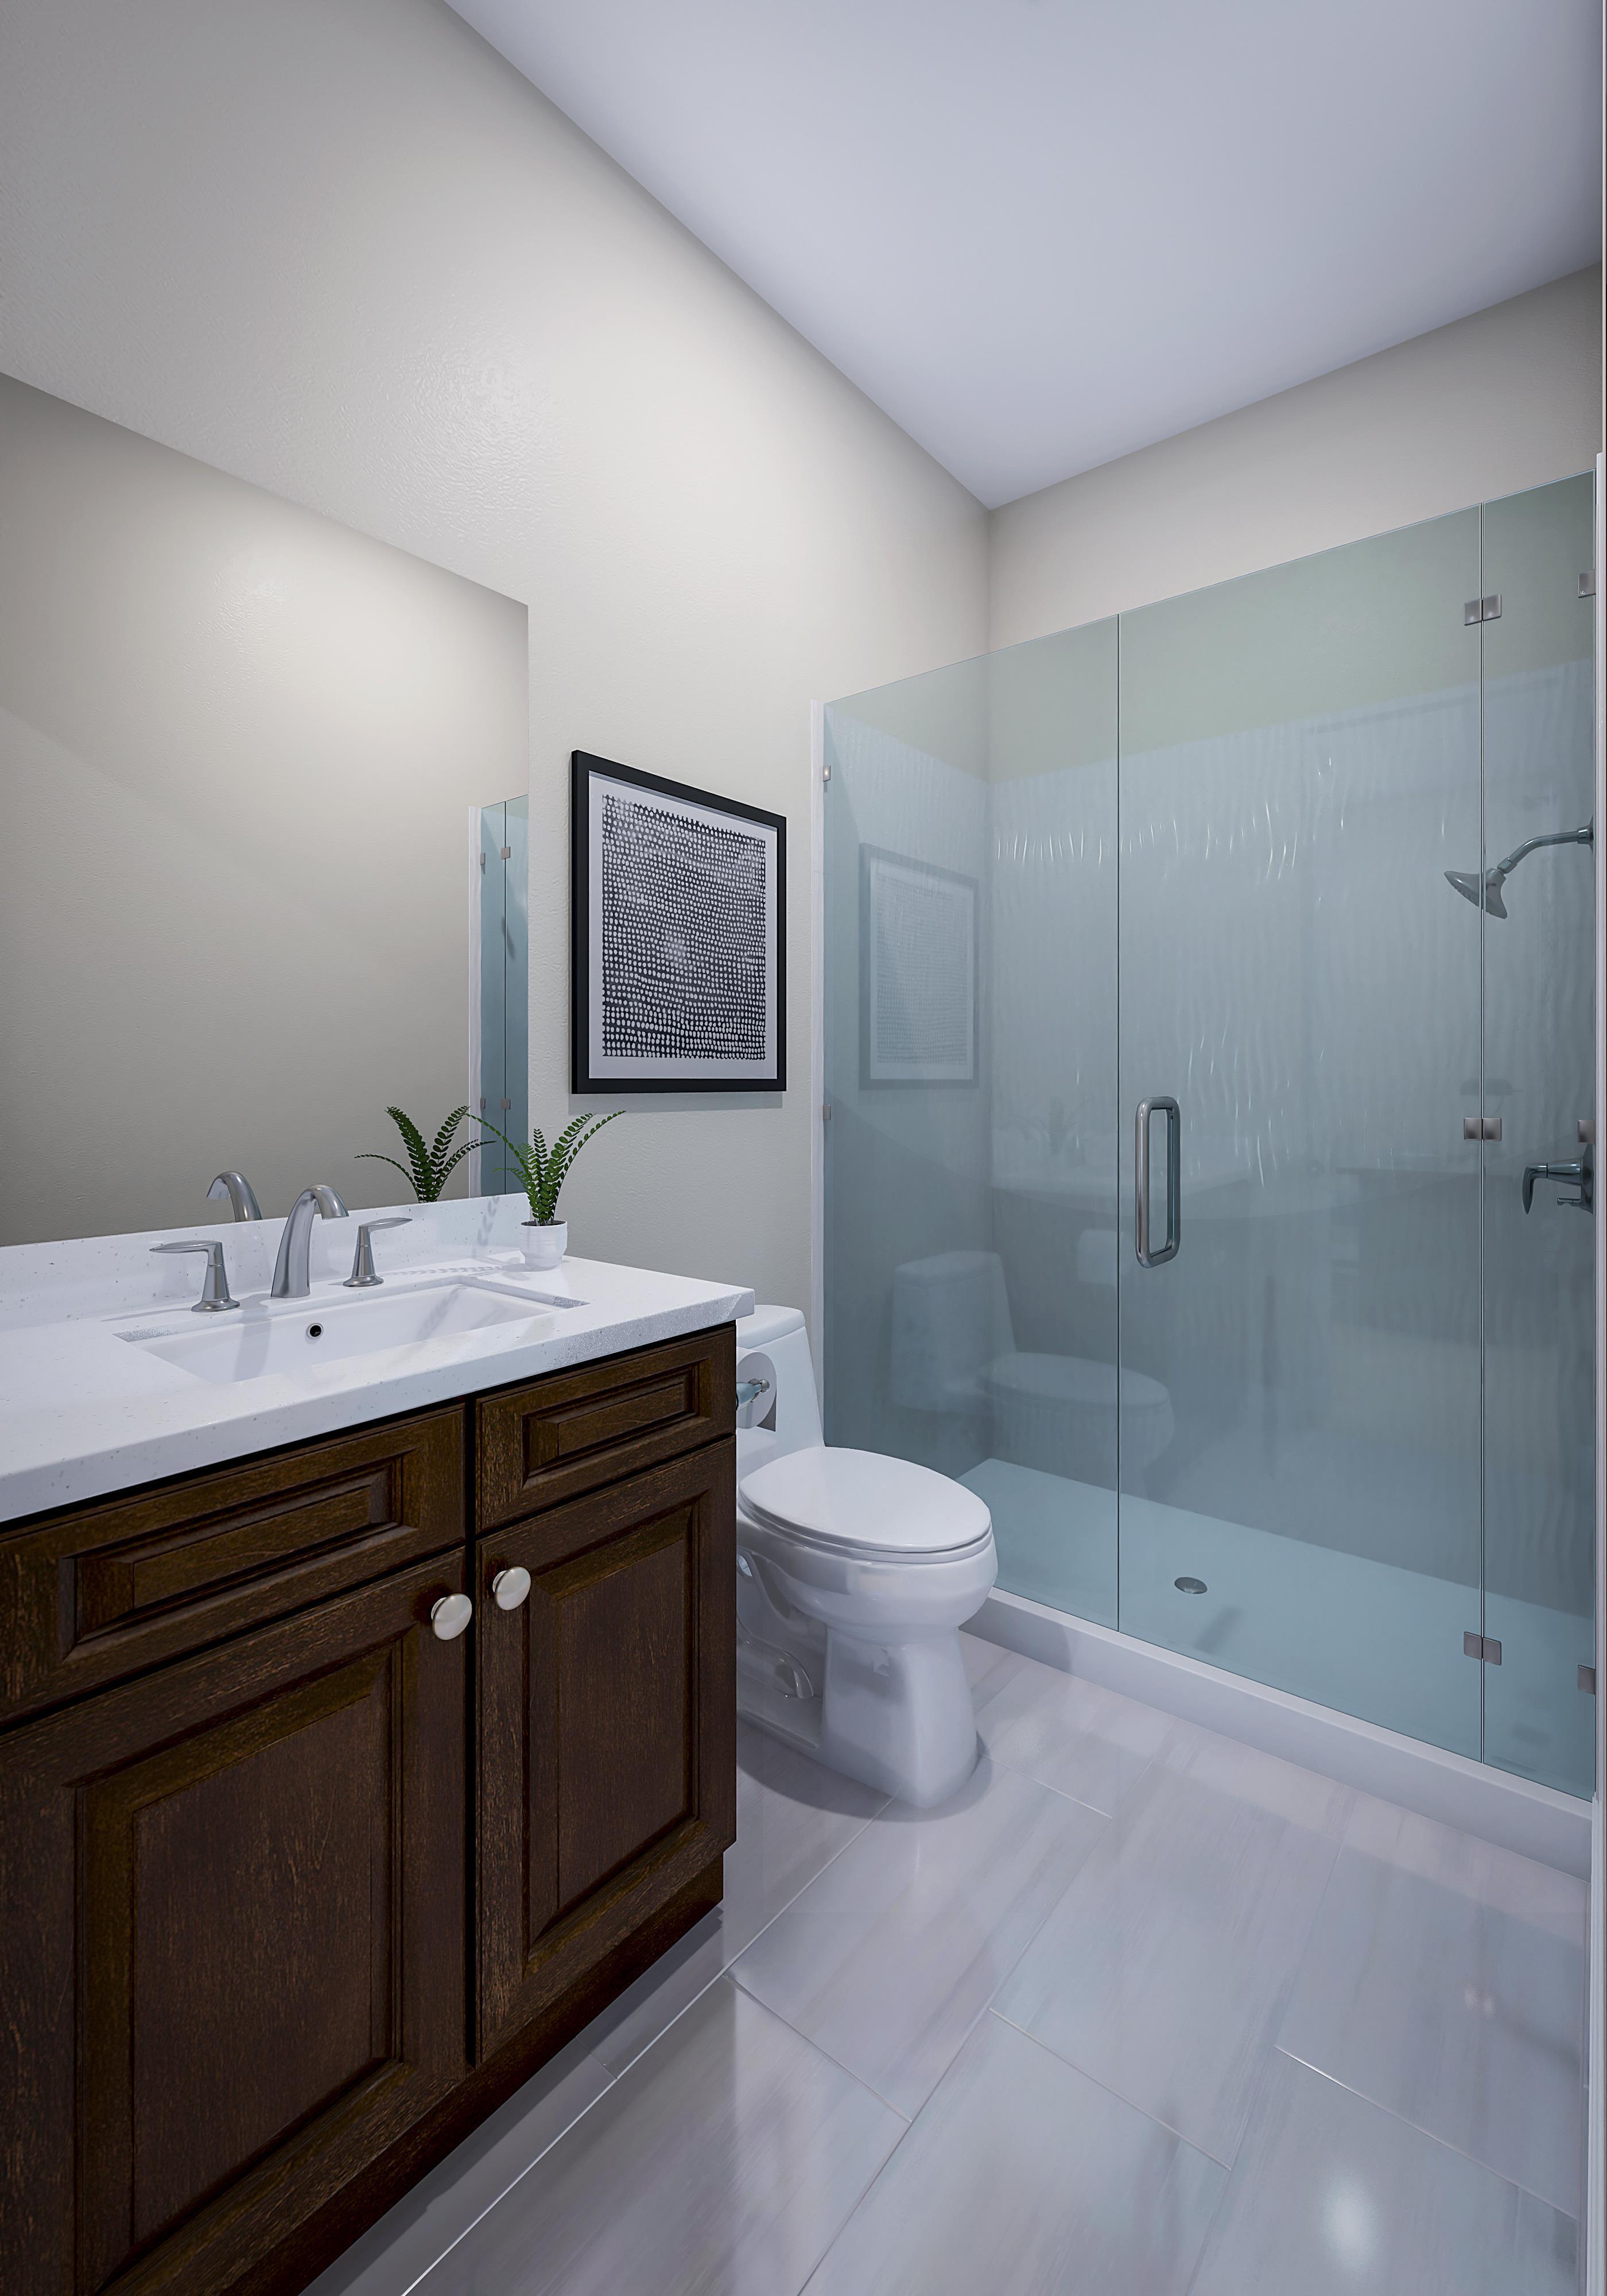 Bathroom featured in the Residence 1 By Pacific Legacy Homes in San Diego, CA